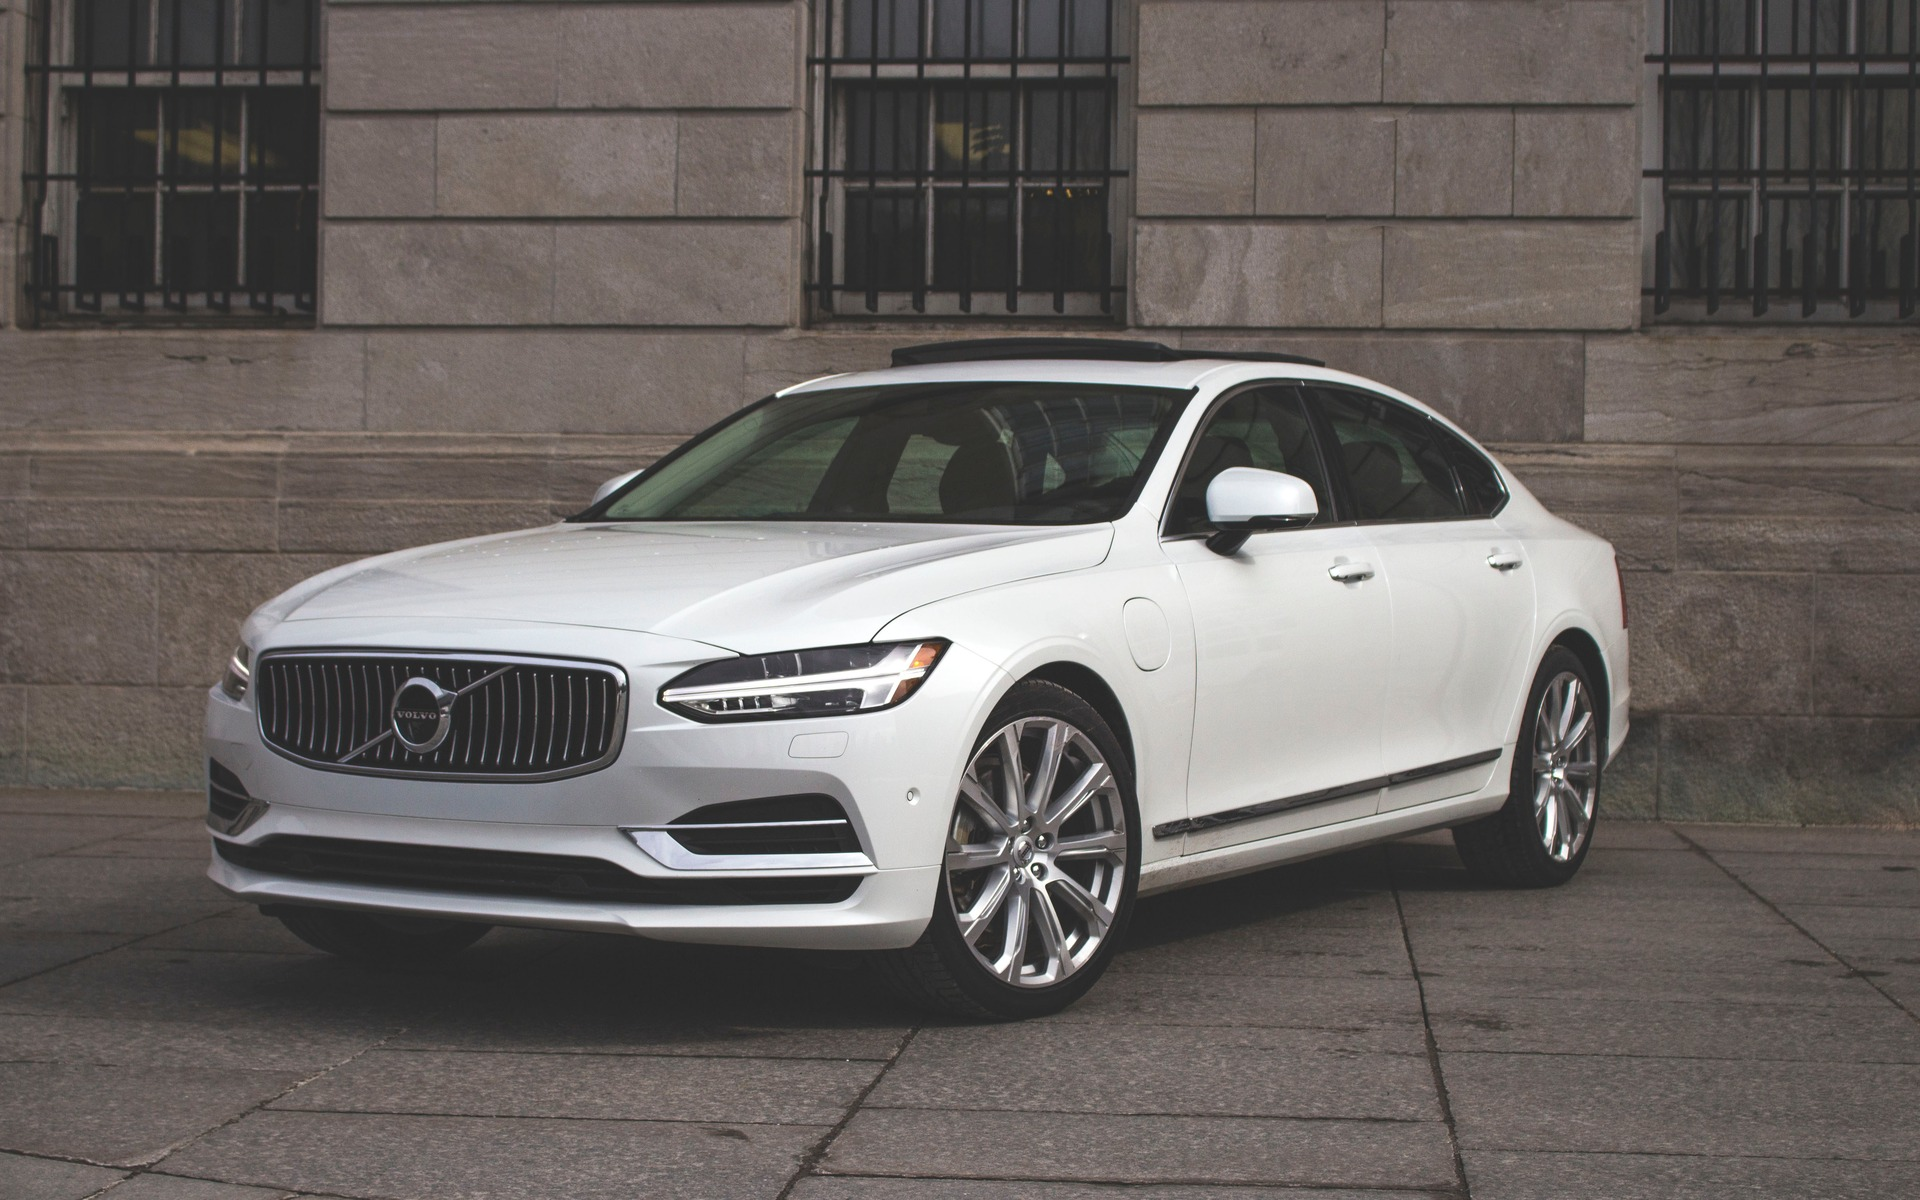 2018 volvo s90 t8 keeping the quirkiness on point the car guide. Black Bedroom Furniture Sets. Home Design Ideas